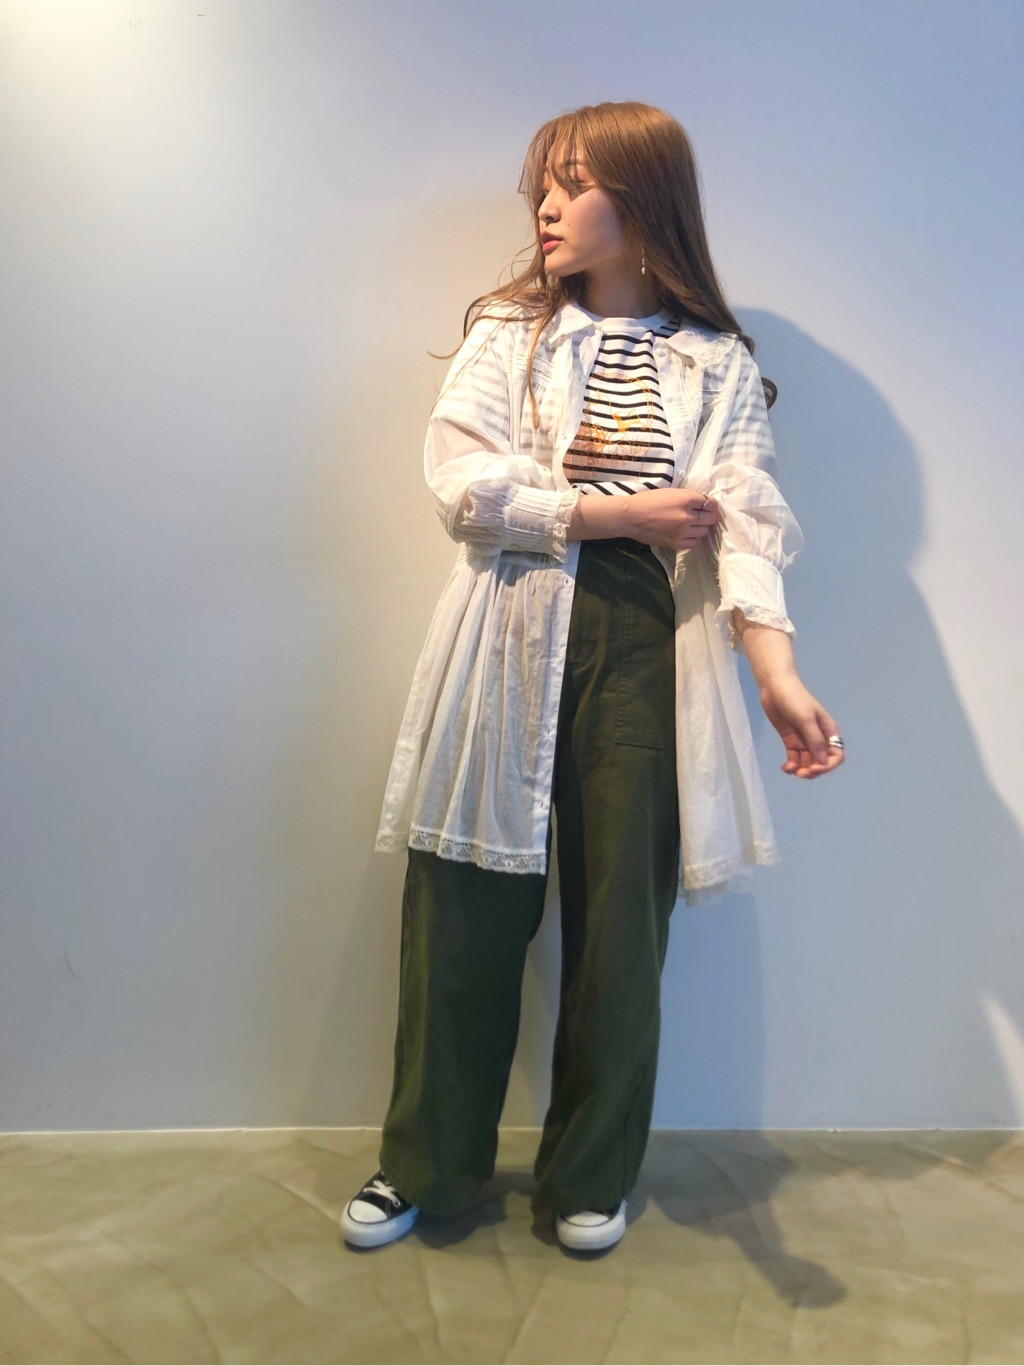 Dot and Stripes CHILD WOMAN ラフォーレ原宿 身長:153cm 2020.06.11